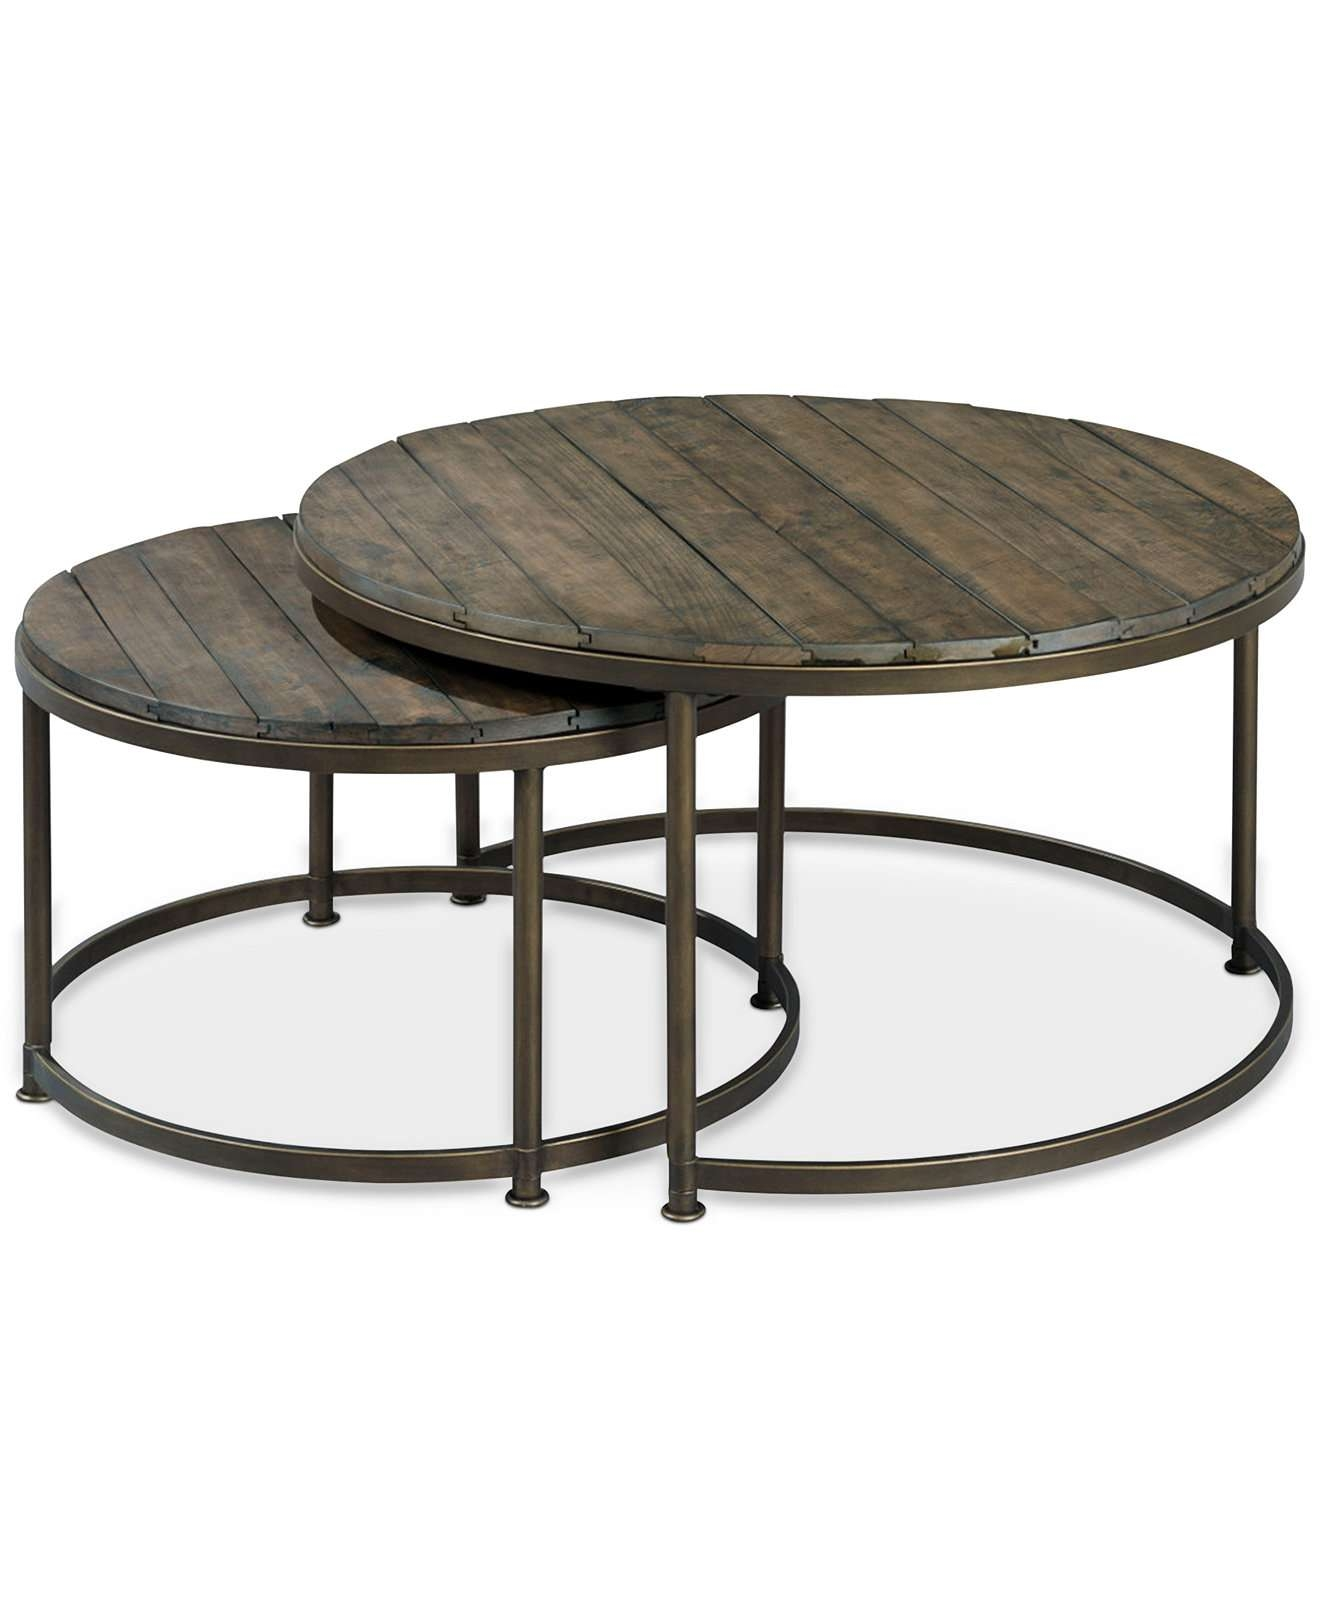 Coffee Tables : Coffee Table Stunning Metal Round Image Concept Pertaining To Most Recently Released Circle Coffee Tables (View 5 of 20)